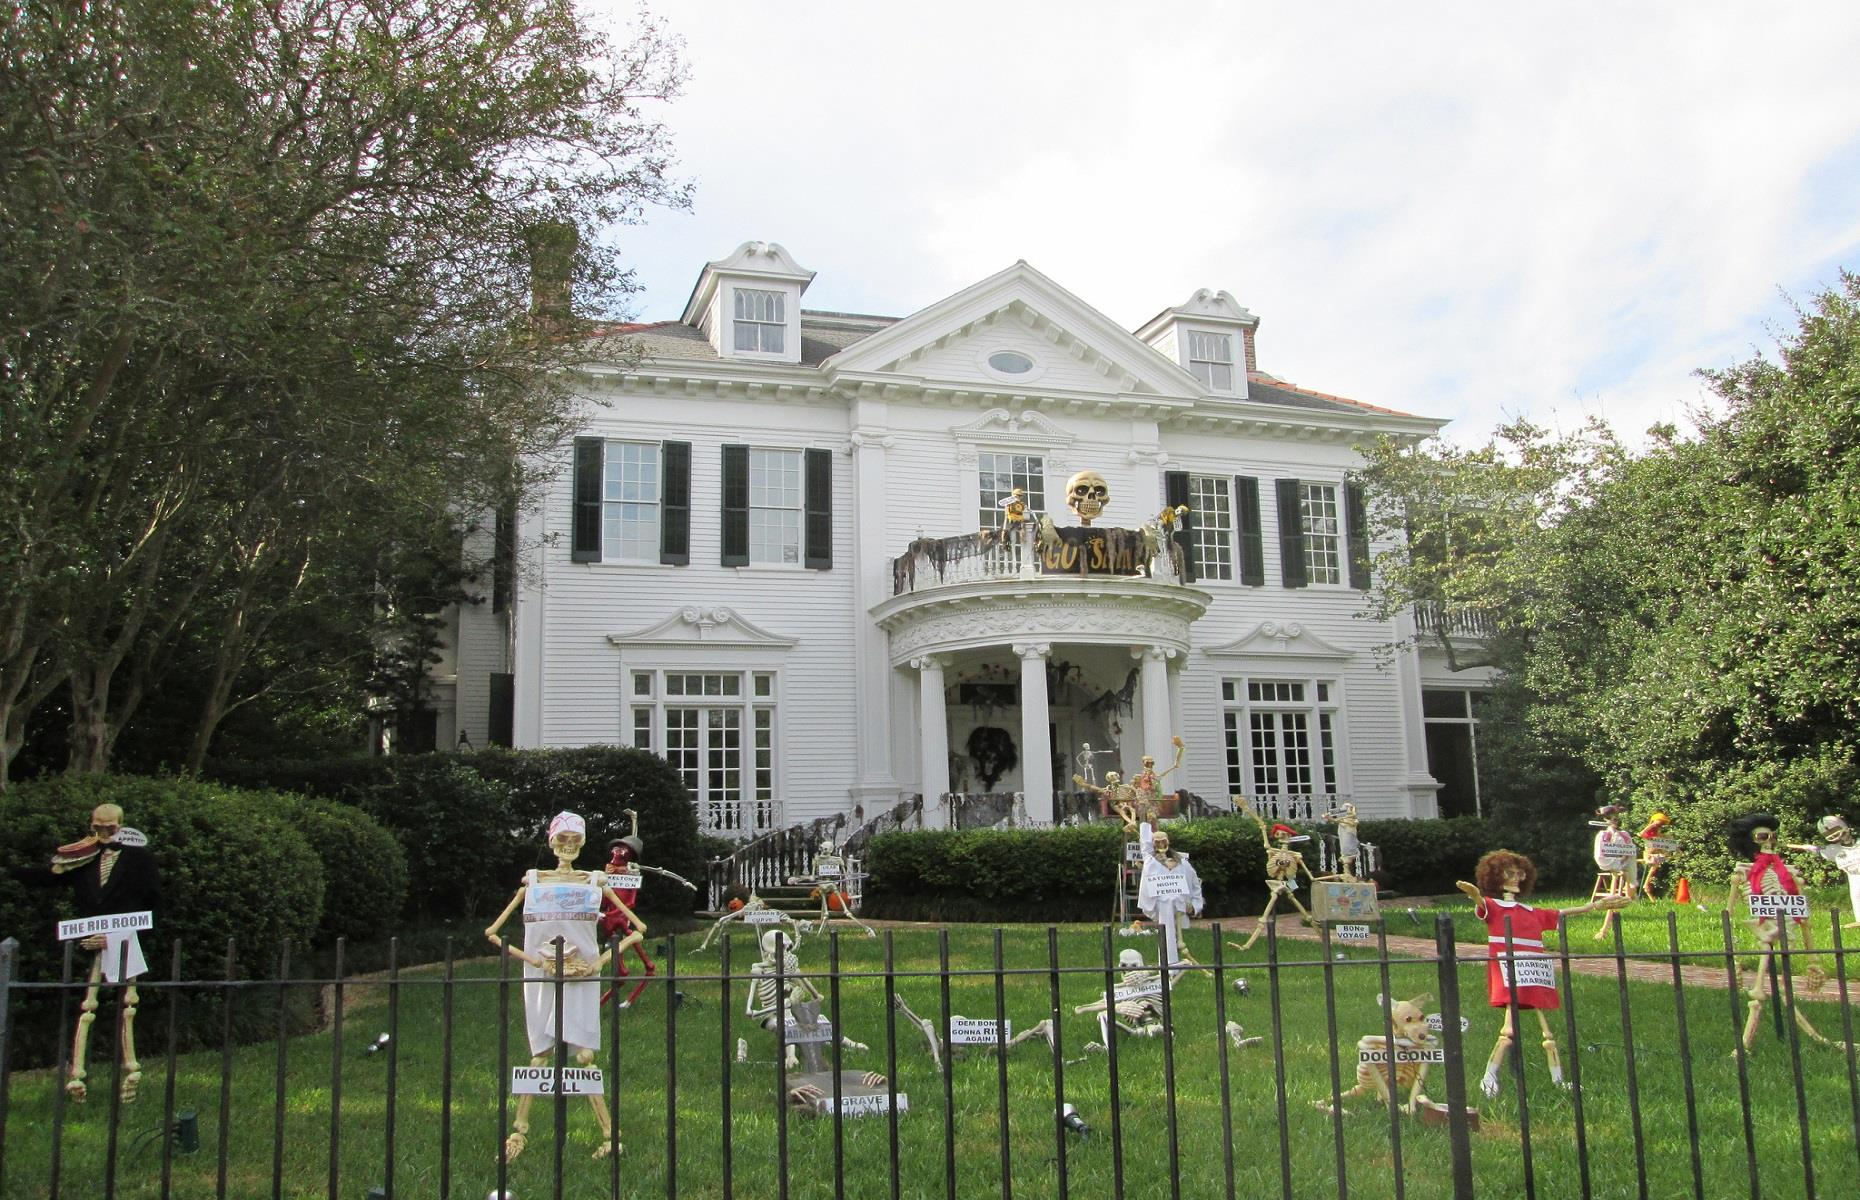 haunting halloween homes in their best fancy dress   loveproperty